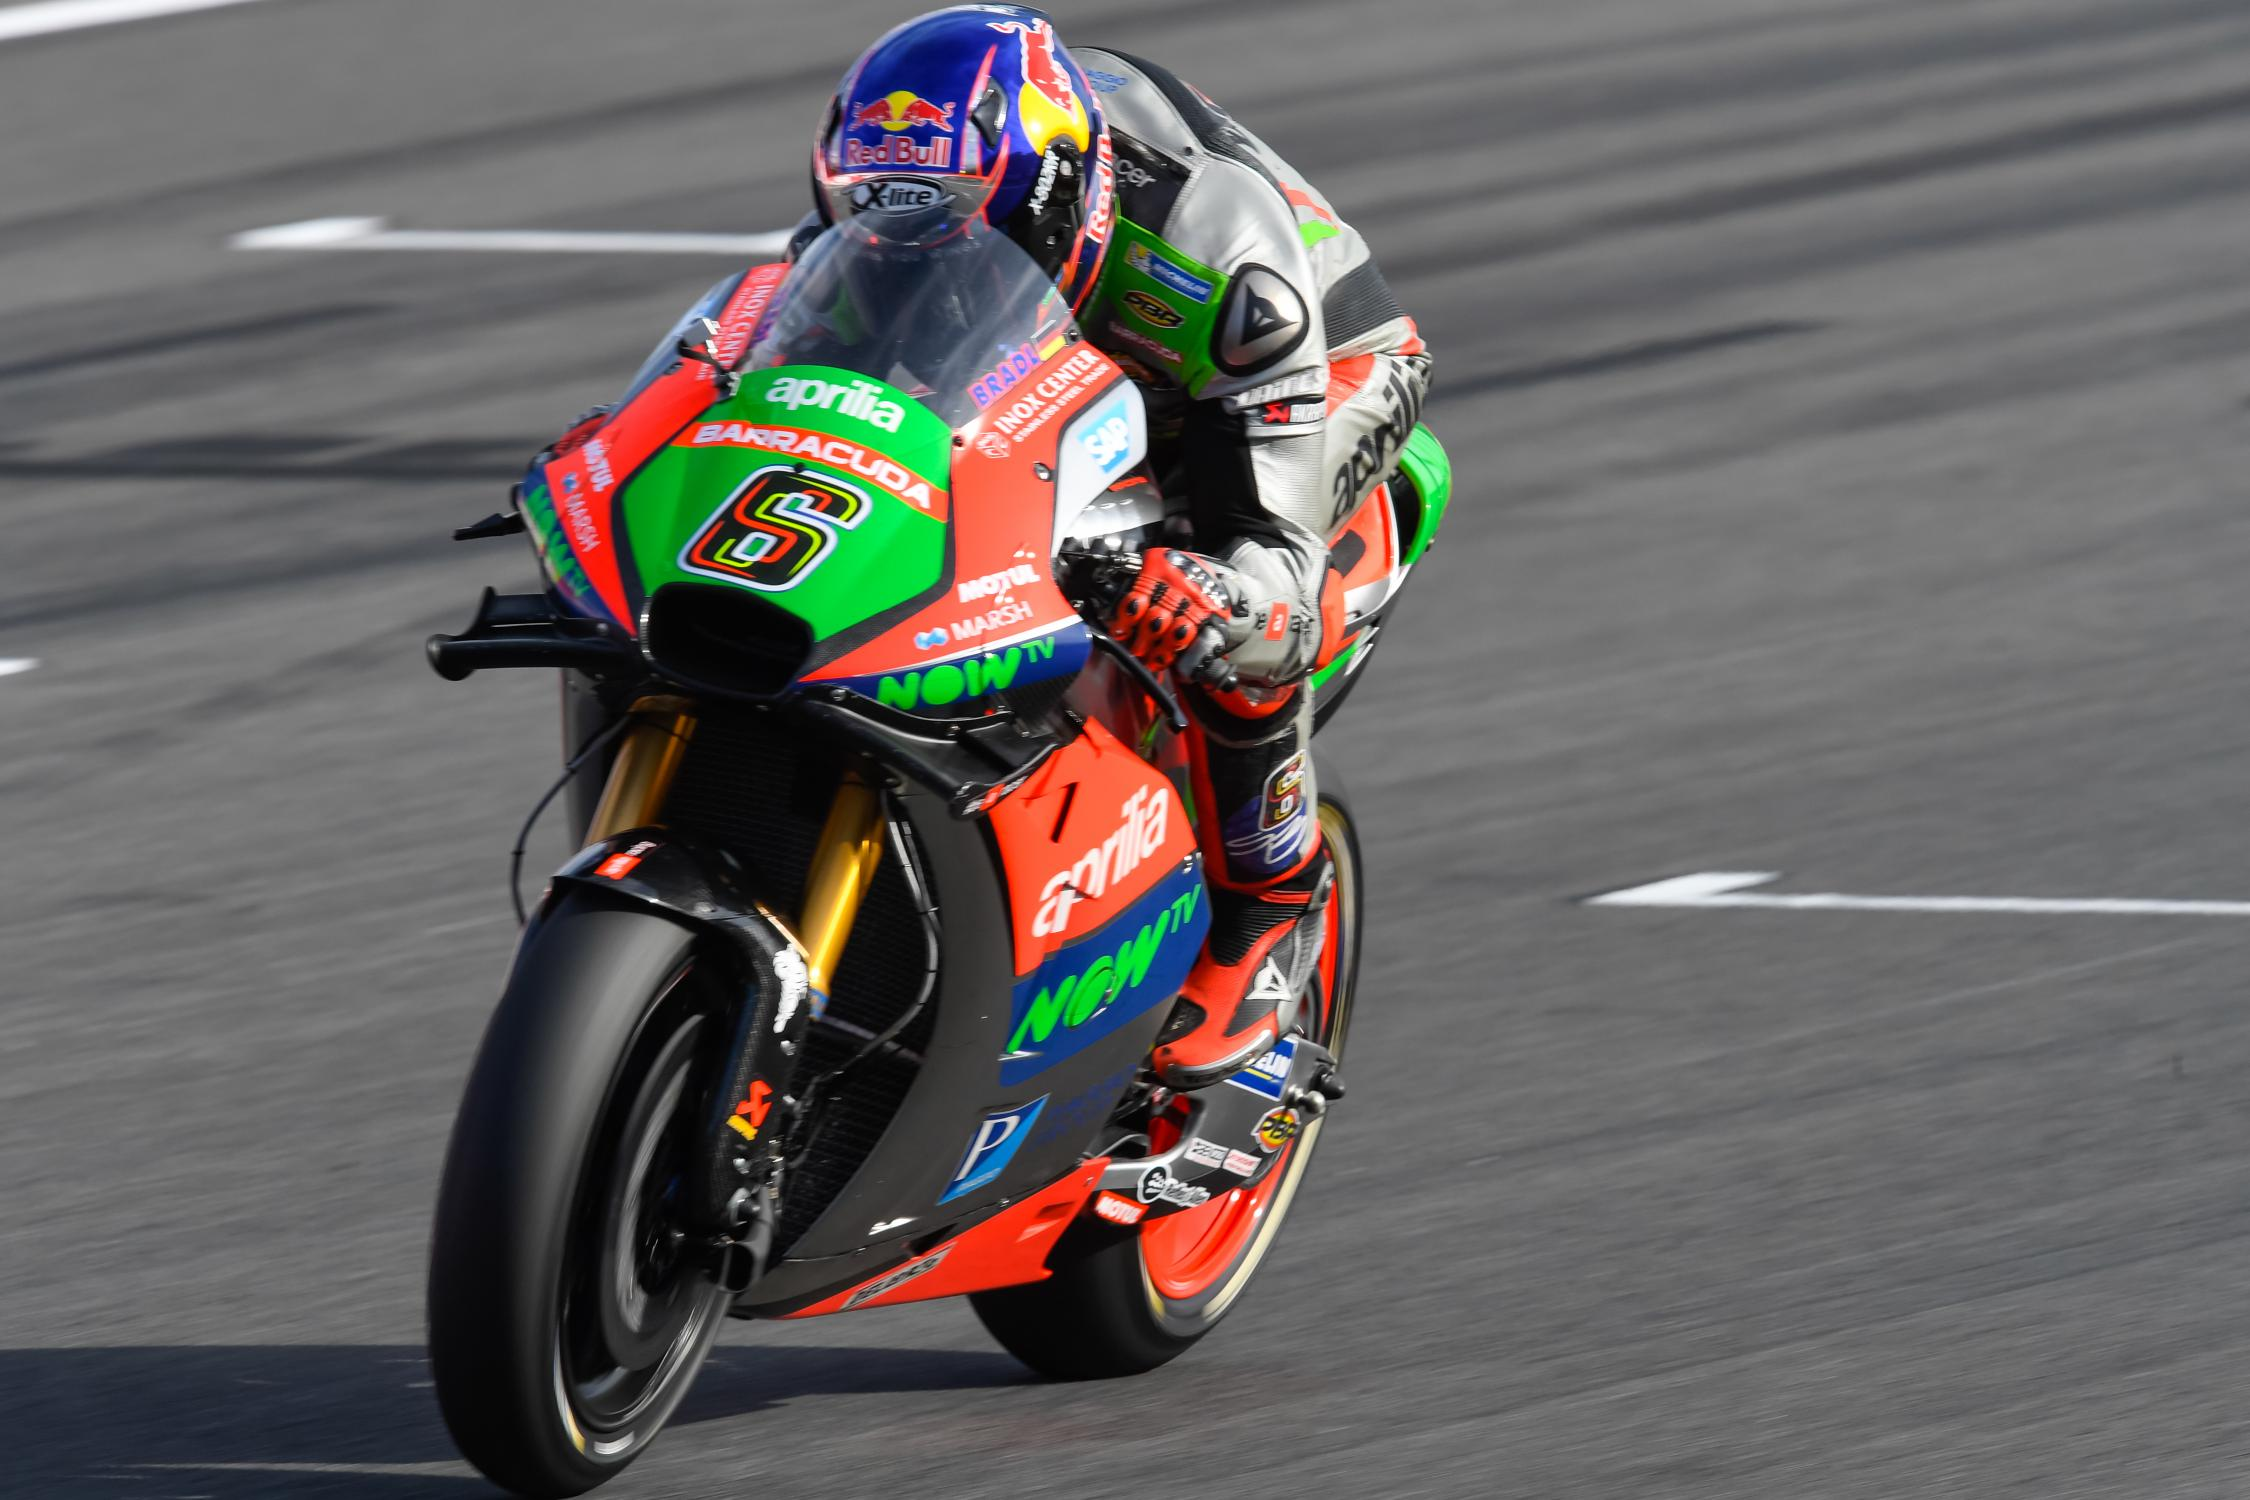 [GP] Motegi 06-stefan-bradl-ger_die3538.gallery_full_top_fullscreen